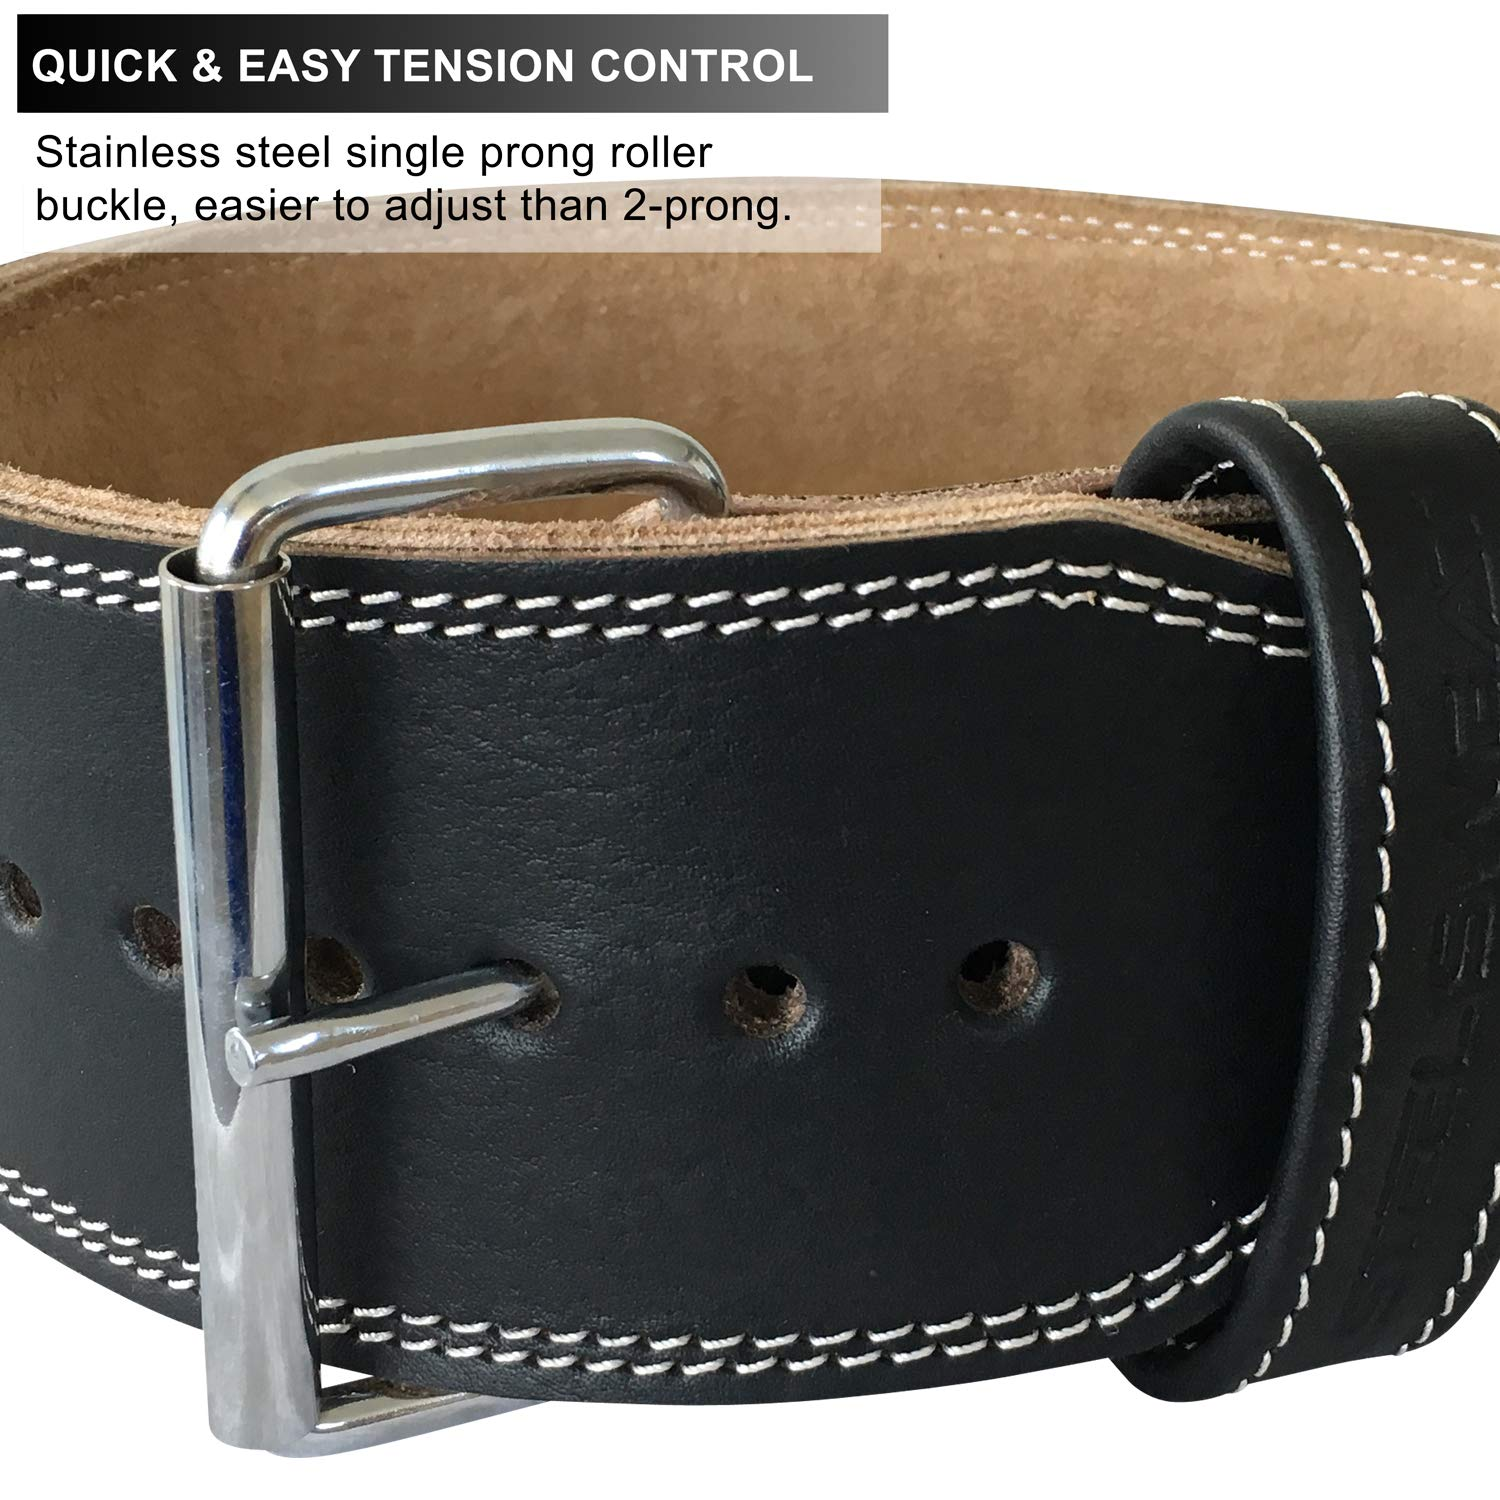 Steel Sweat Weight Lifting Belt - 4 Inches Wide by 10mm - Single Prong Powerlifting Belt That's Heavy Duty - Genuine Cowhide Leather - Large Texus by Steel Sweat (Image #5)